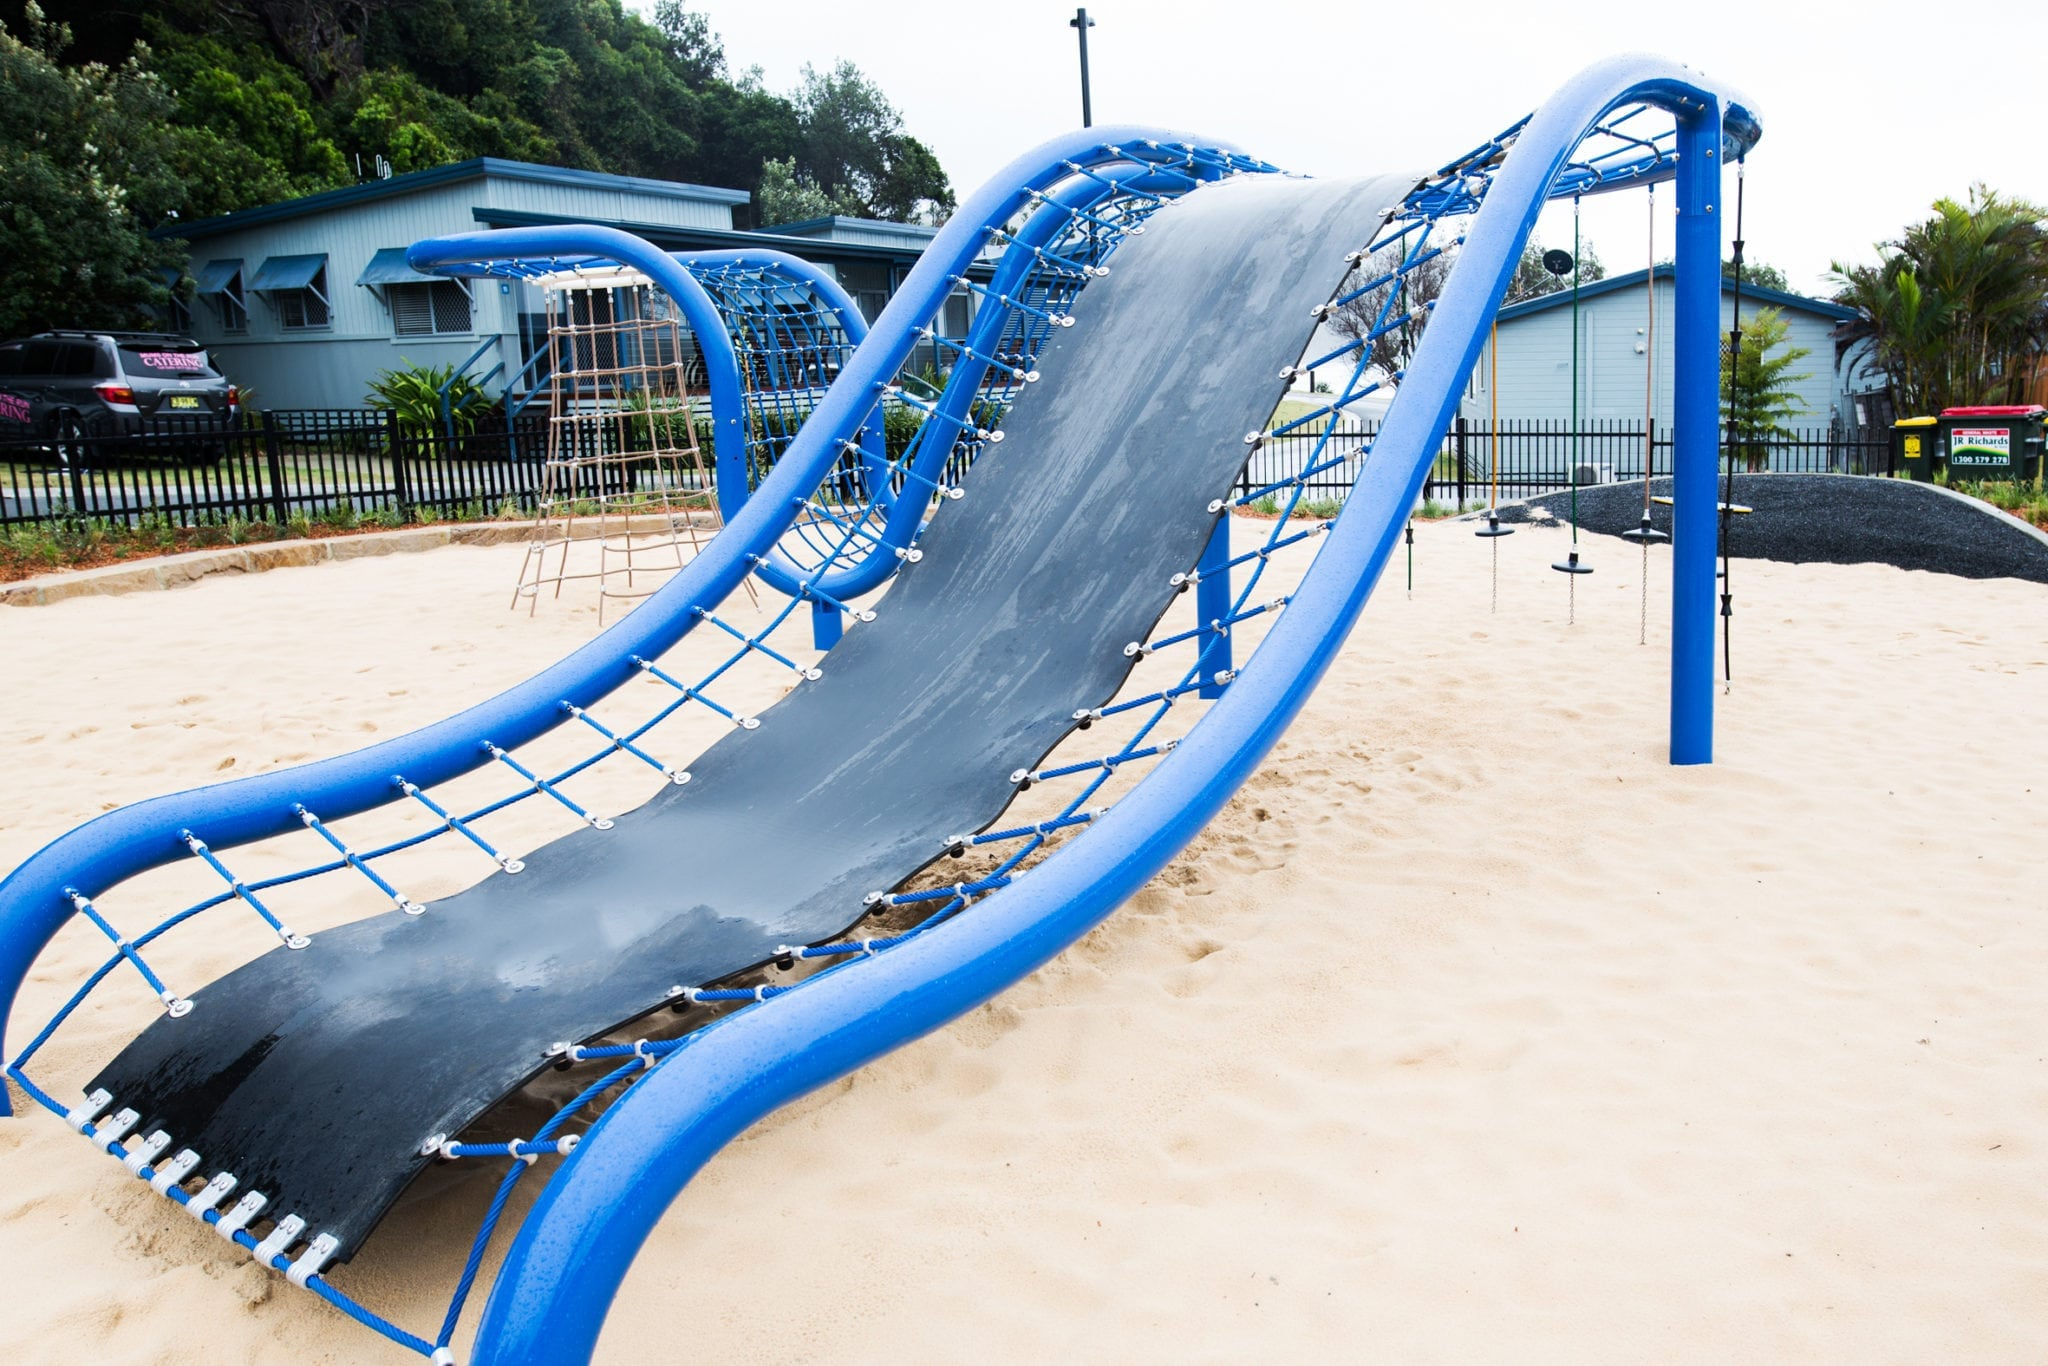 The new playground at Reflections Holiday Parks Seal Rocks